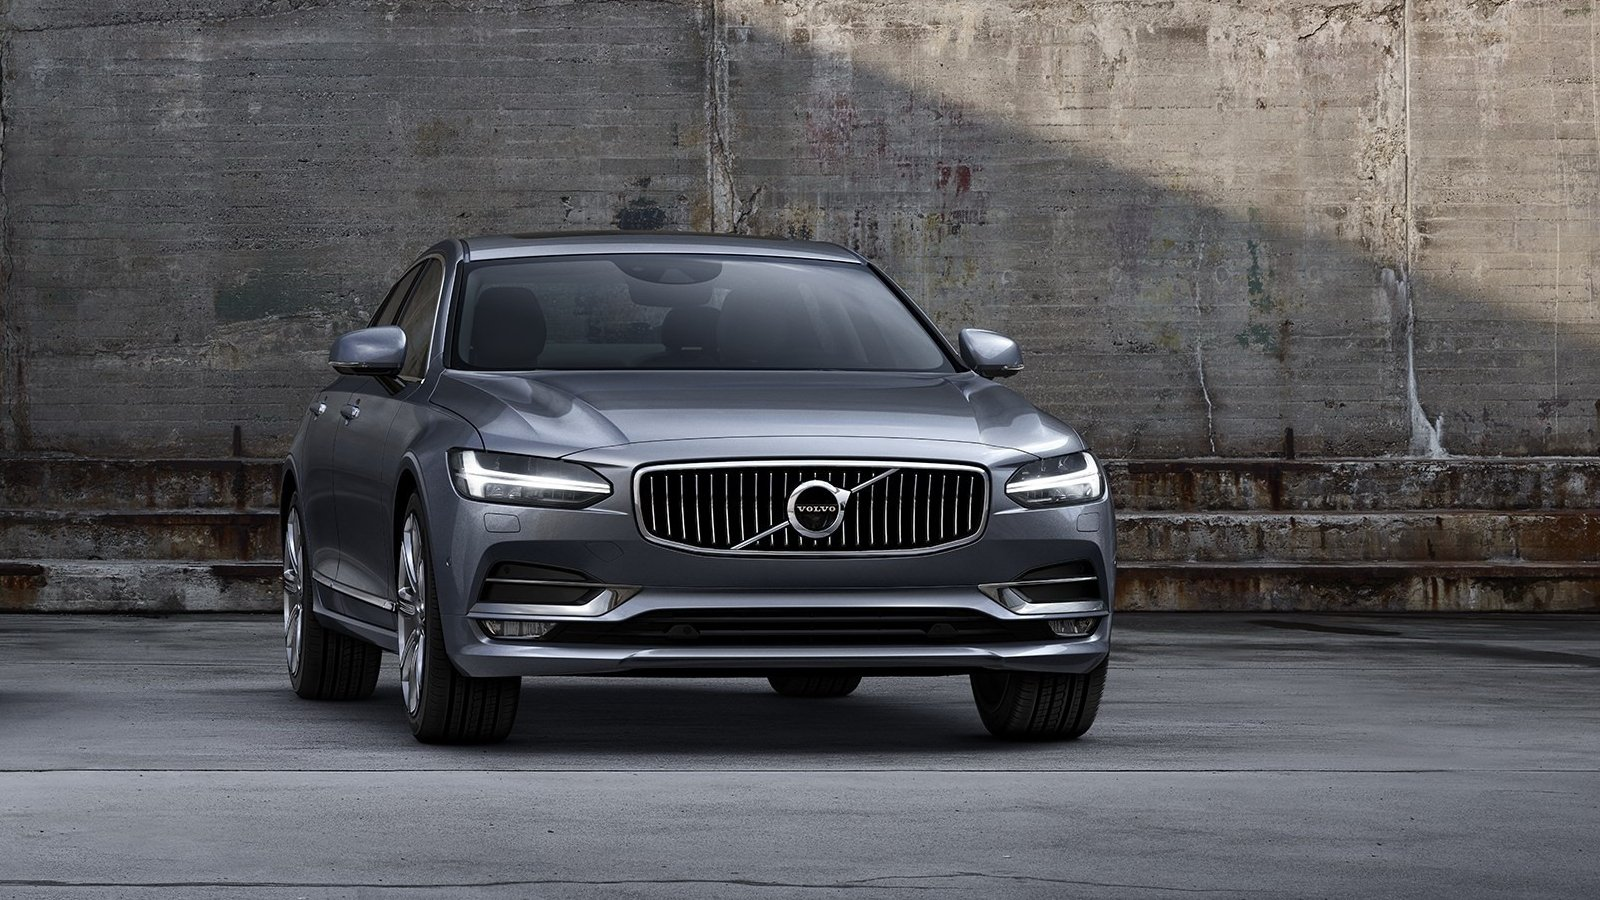 Car Show Wallpaper Download 2016 Volvo S90 And V90 With Polestar Performance